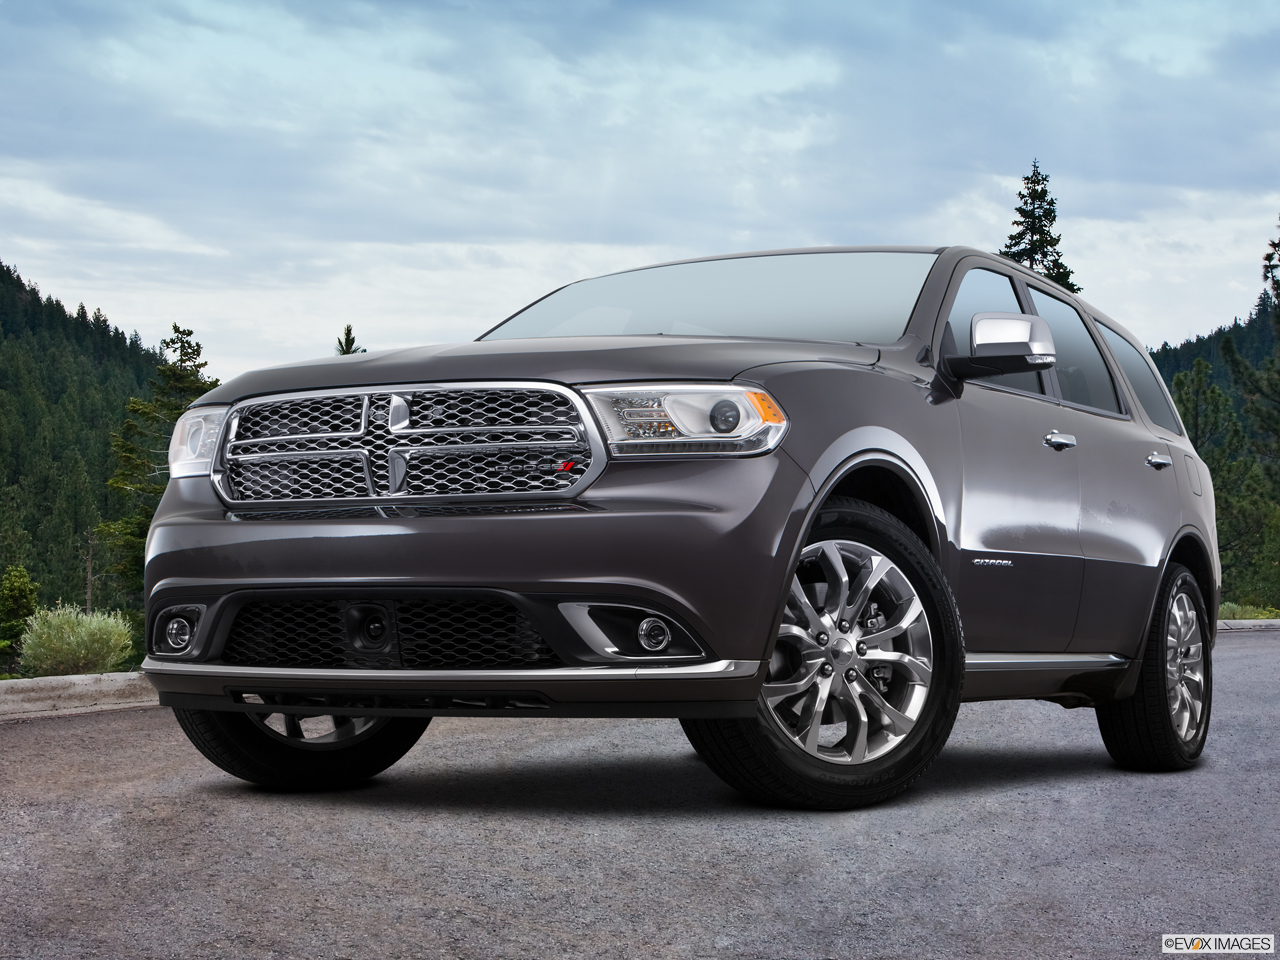 Exterior View Of 2017 Dodge Durango in Moreno Valley